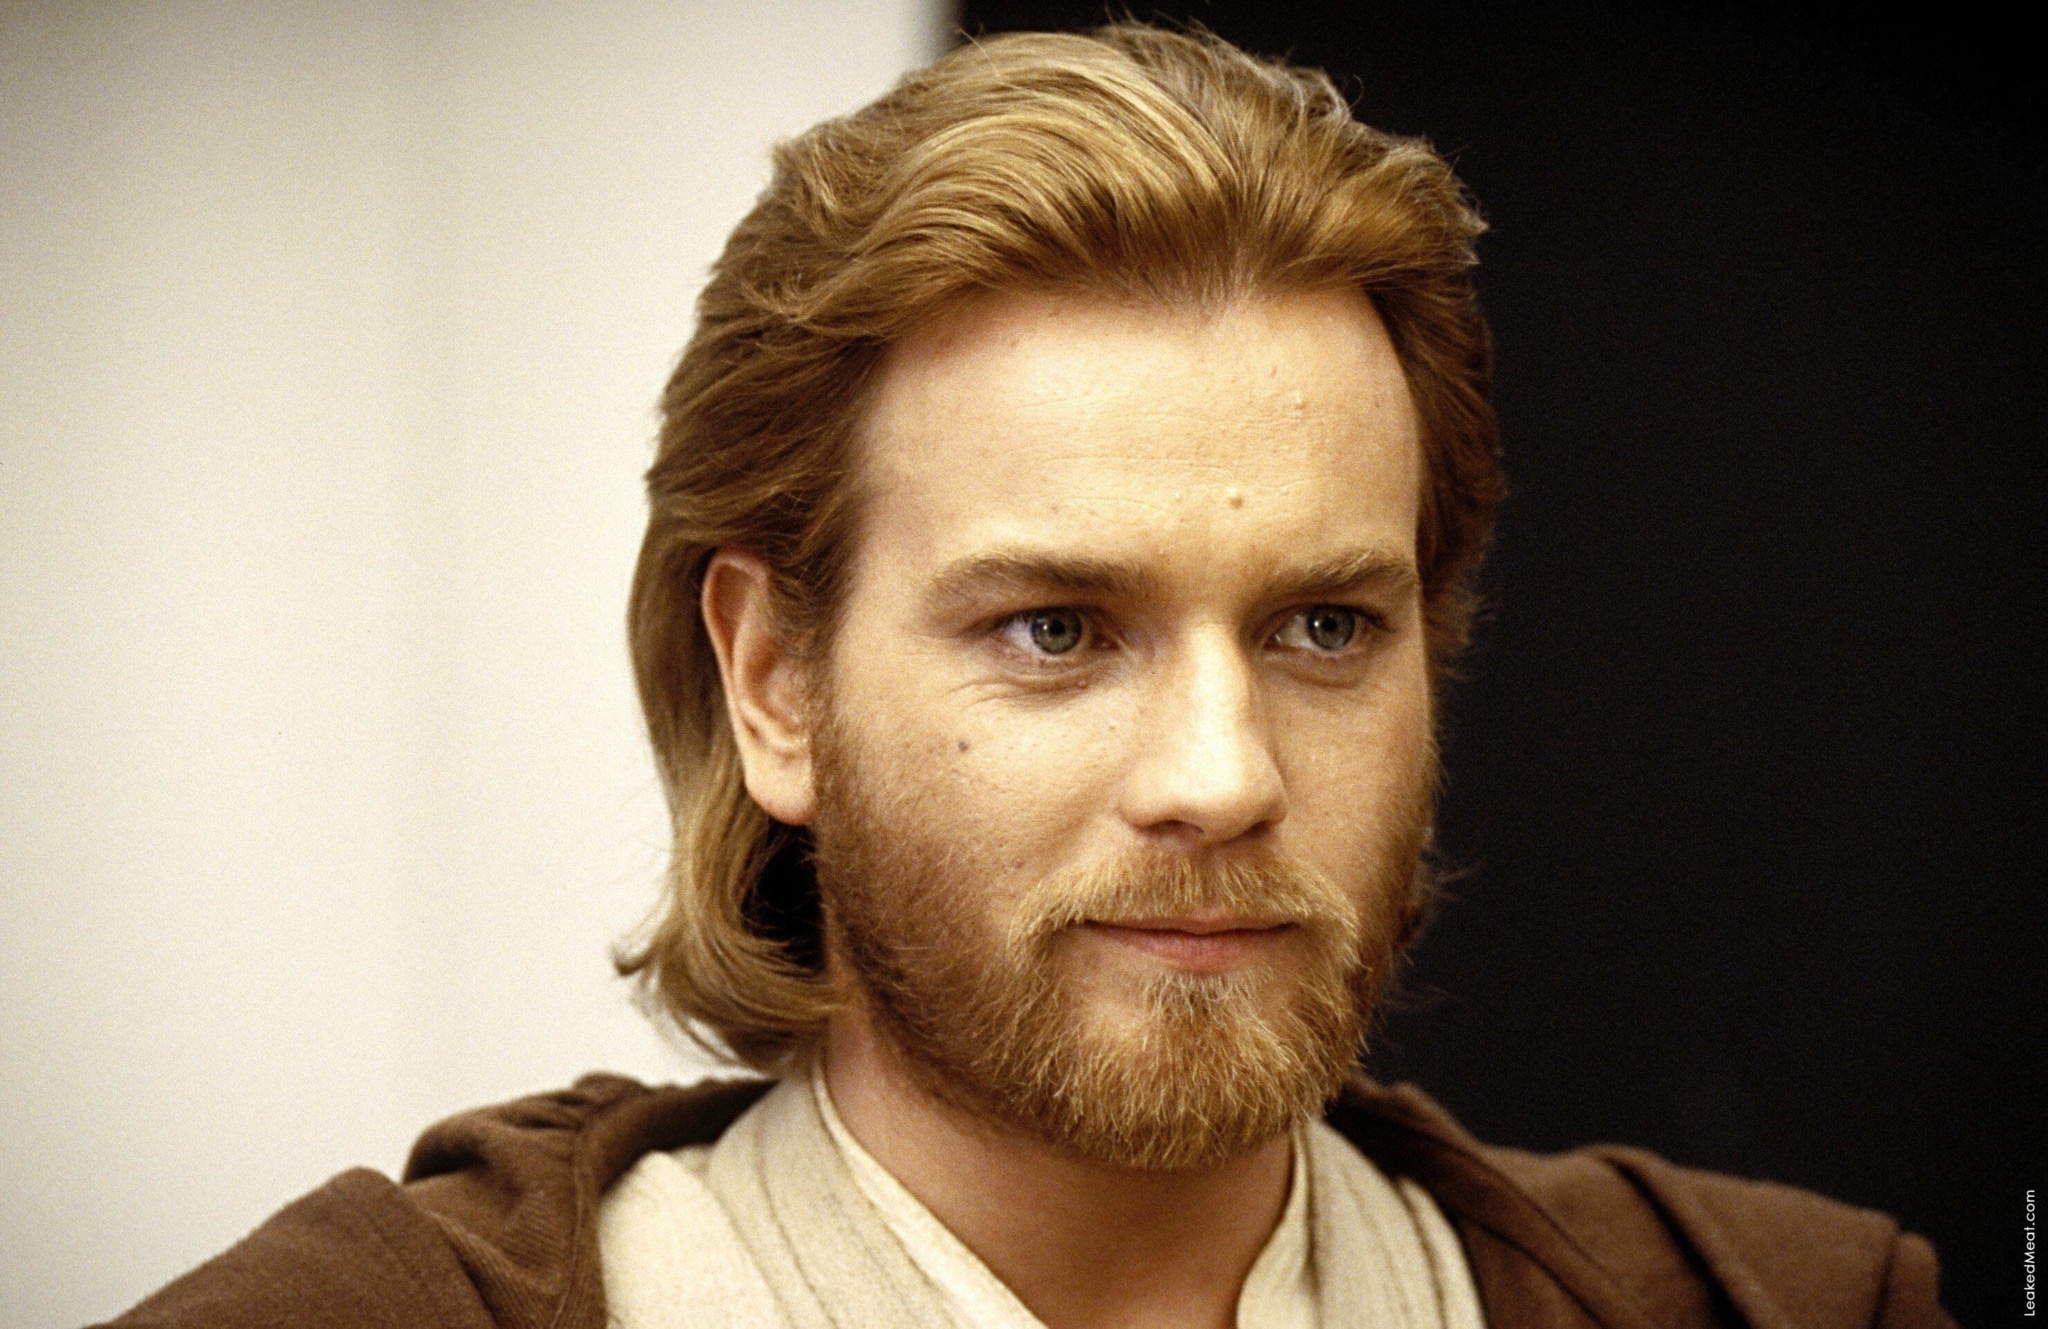 Ewan McGregor | LeakedMeat 0